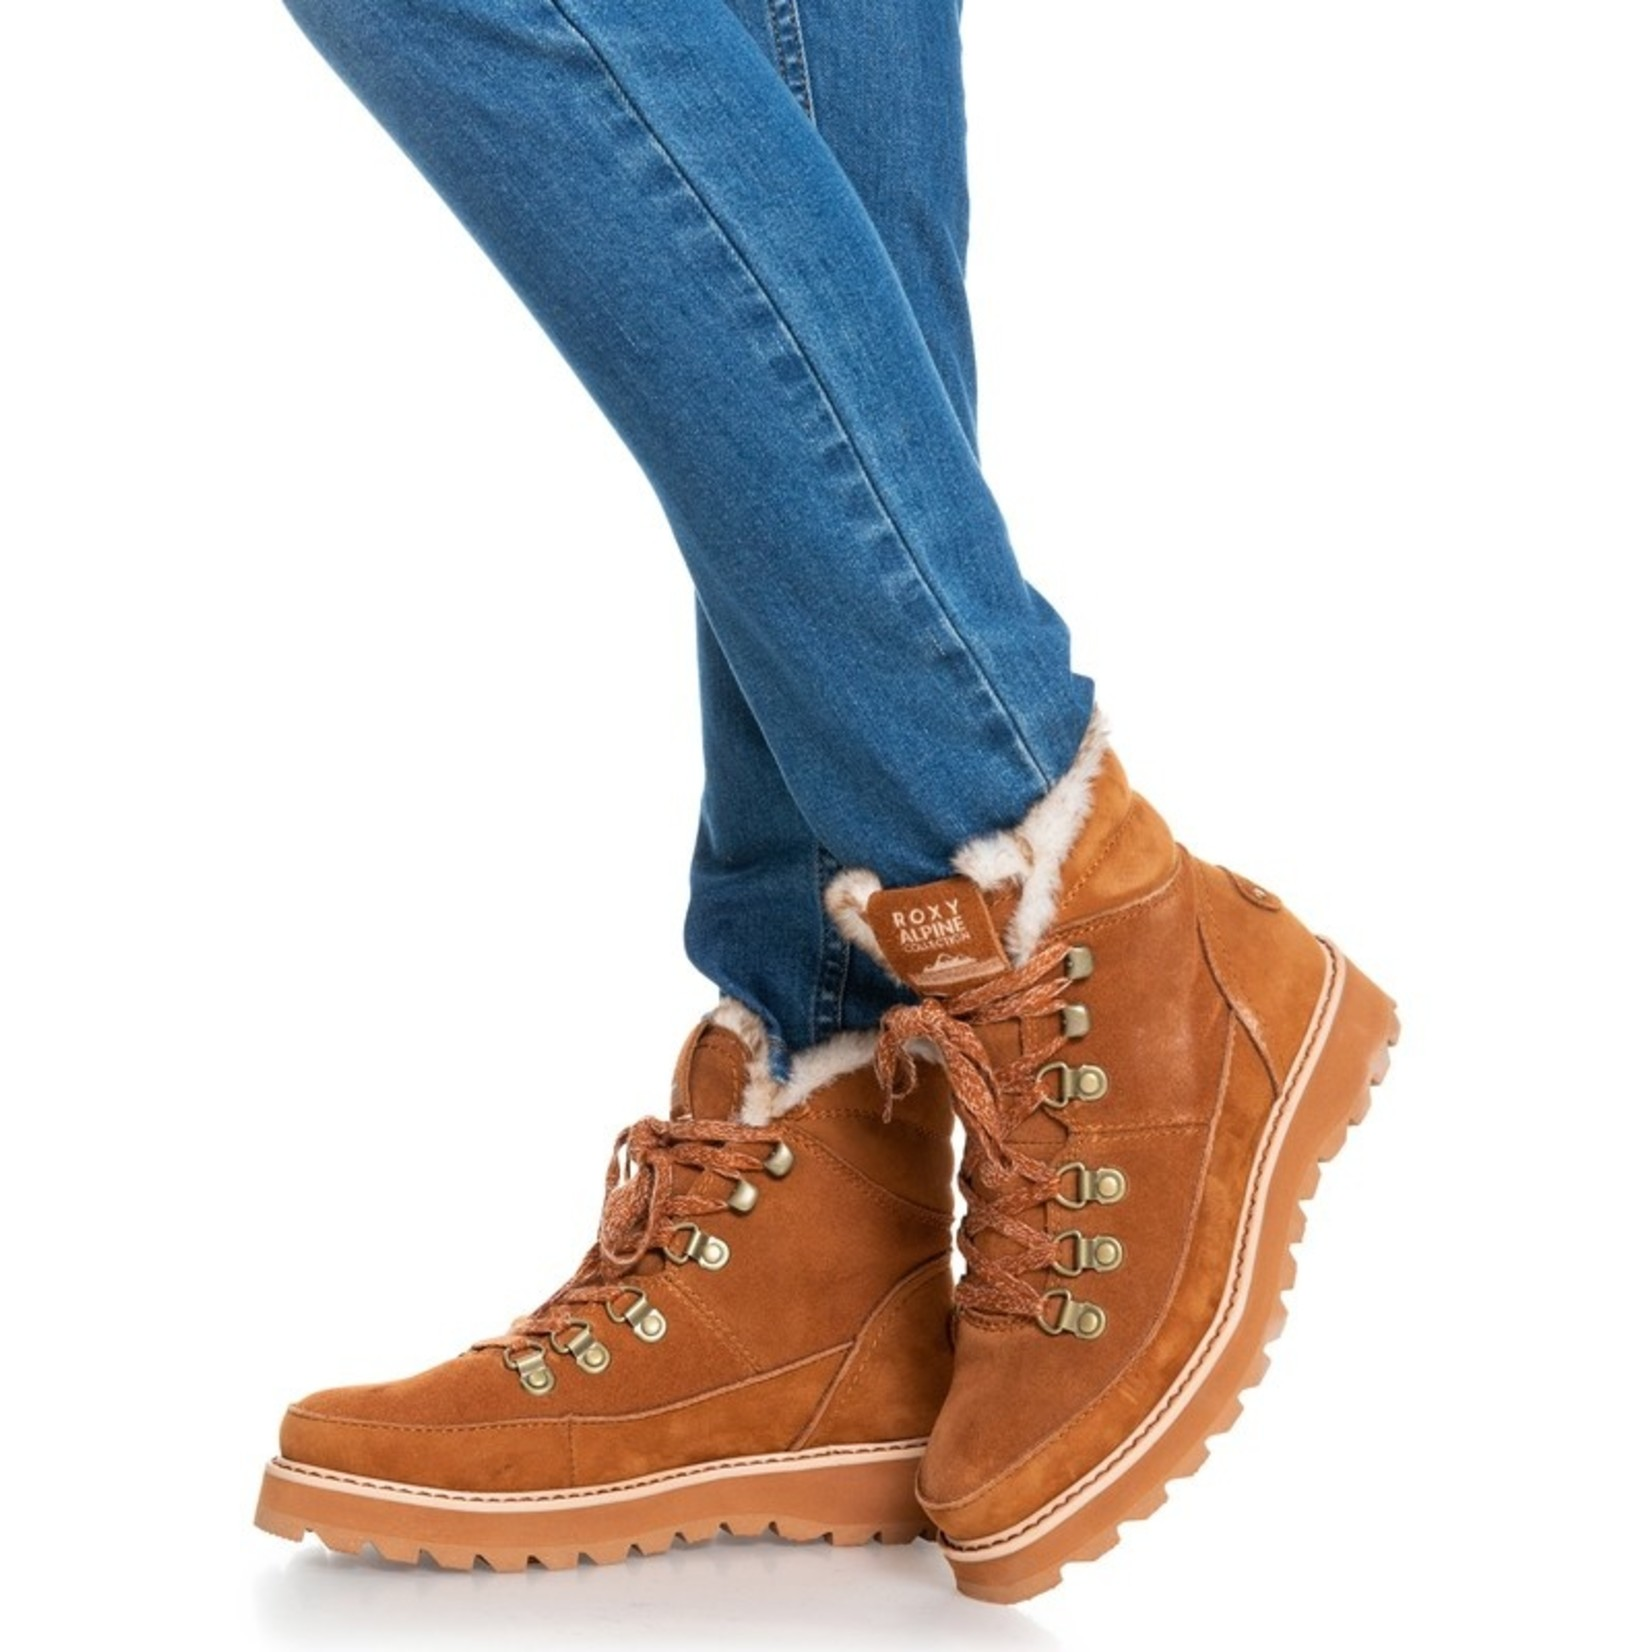 Roxy SADIE LACE-UP BOOT